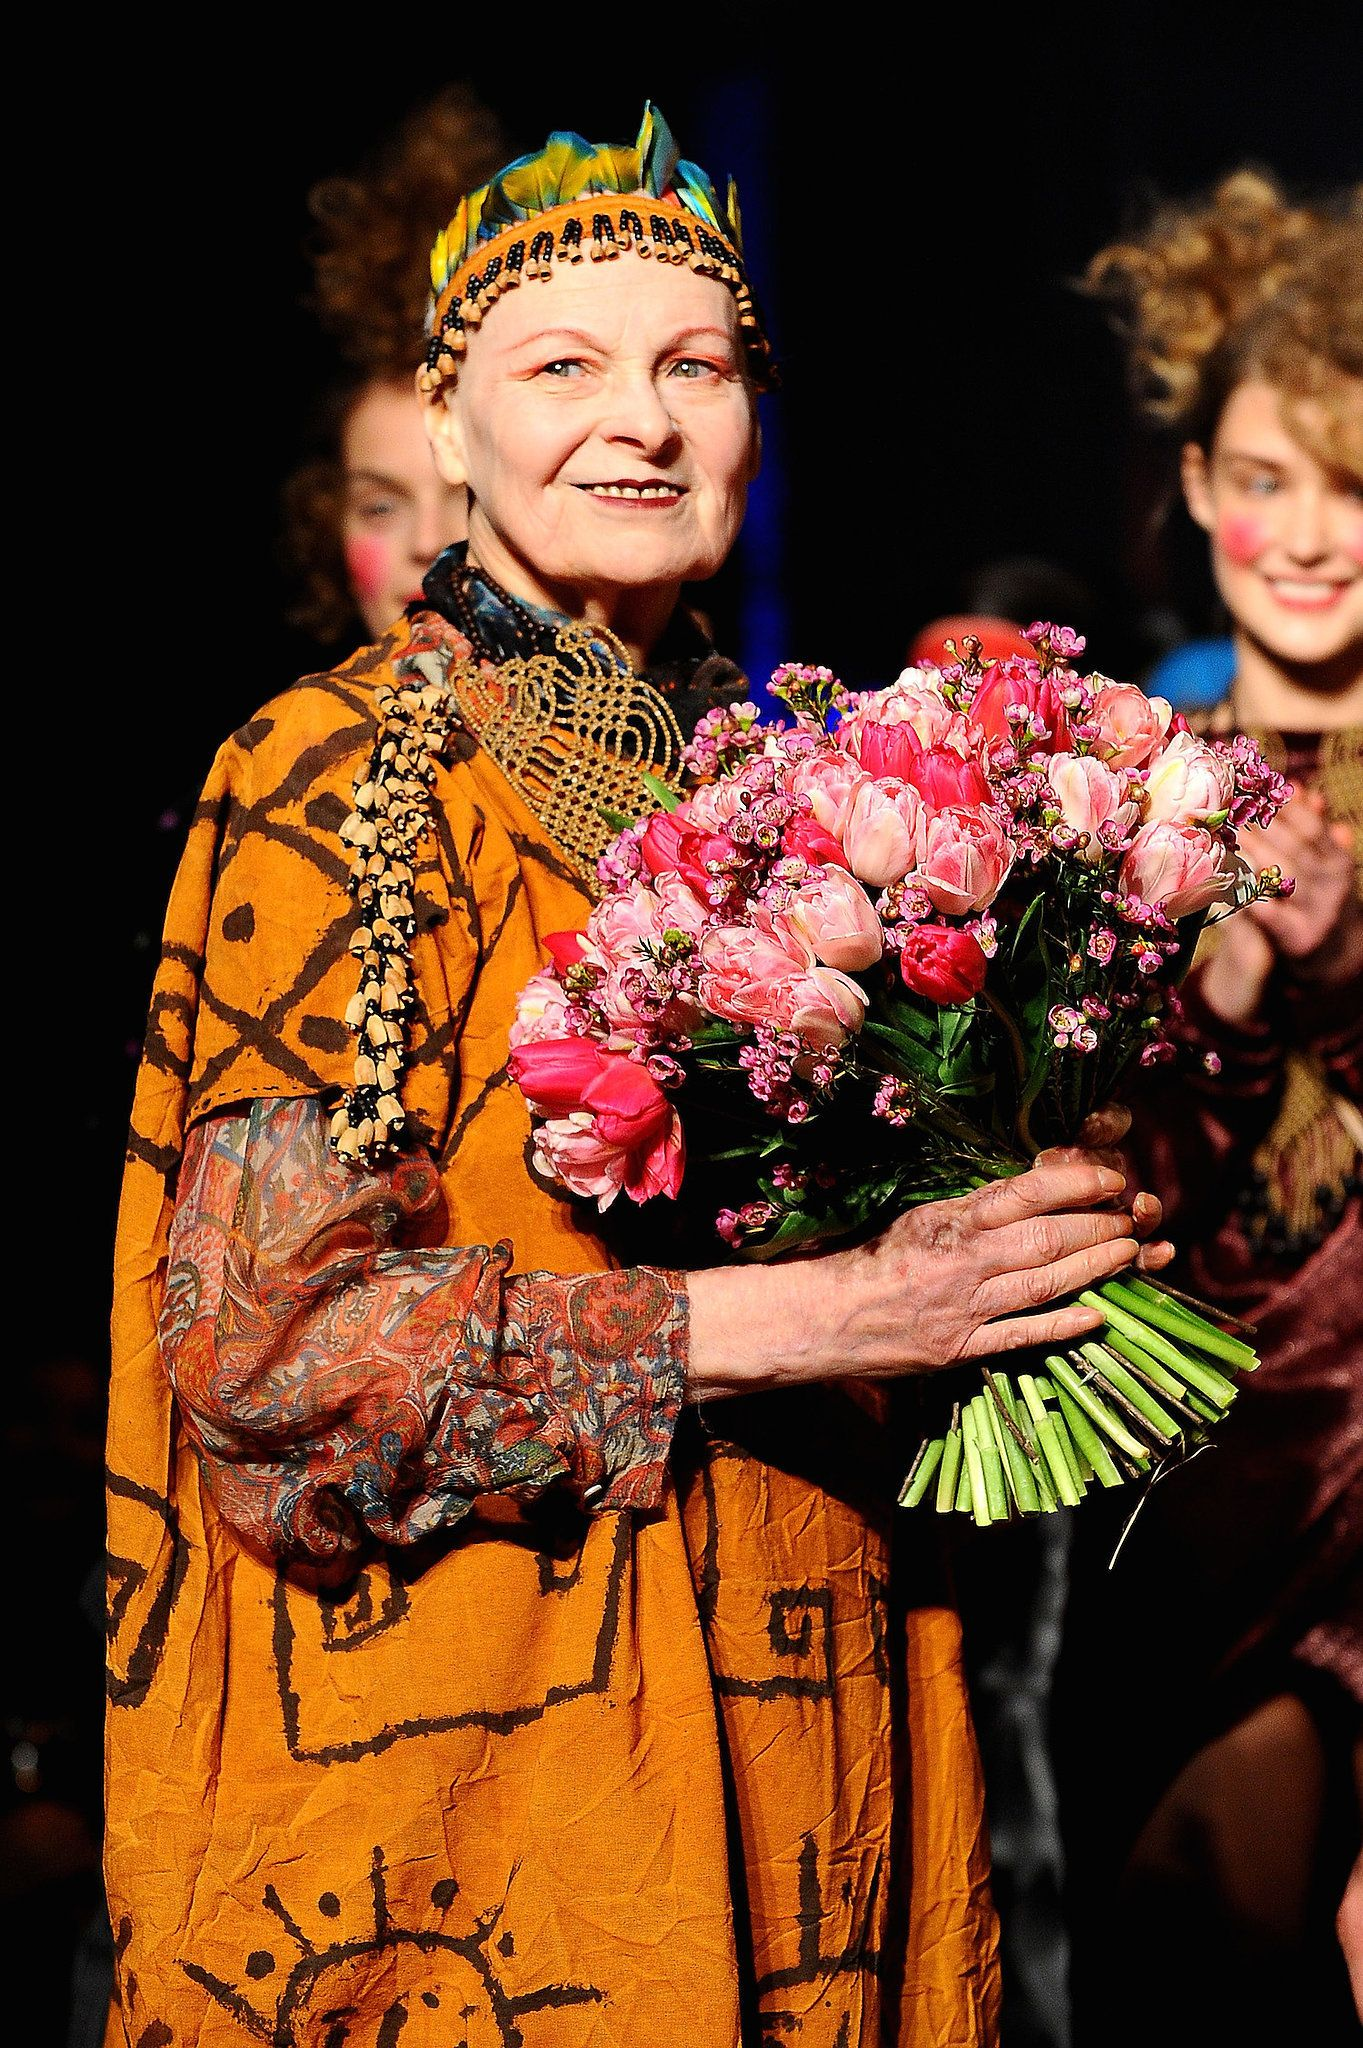 Dame Vivienne Westwood Is An English Fashion Designer And Businesswoman Who Is Largely Responsible For Bringing Punk And New Wav Vivienne Westwood Fashion English Fashion